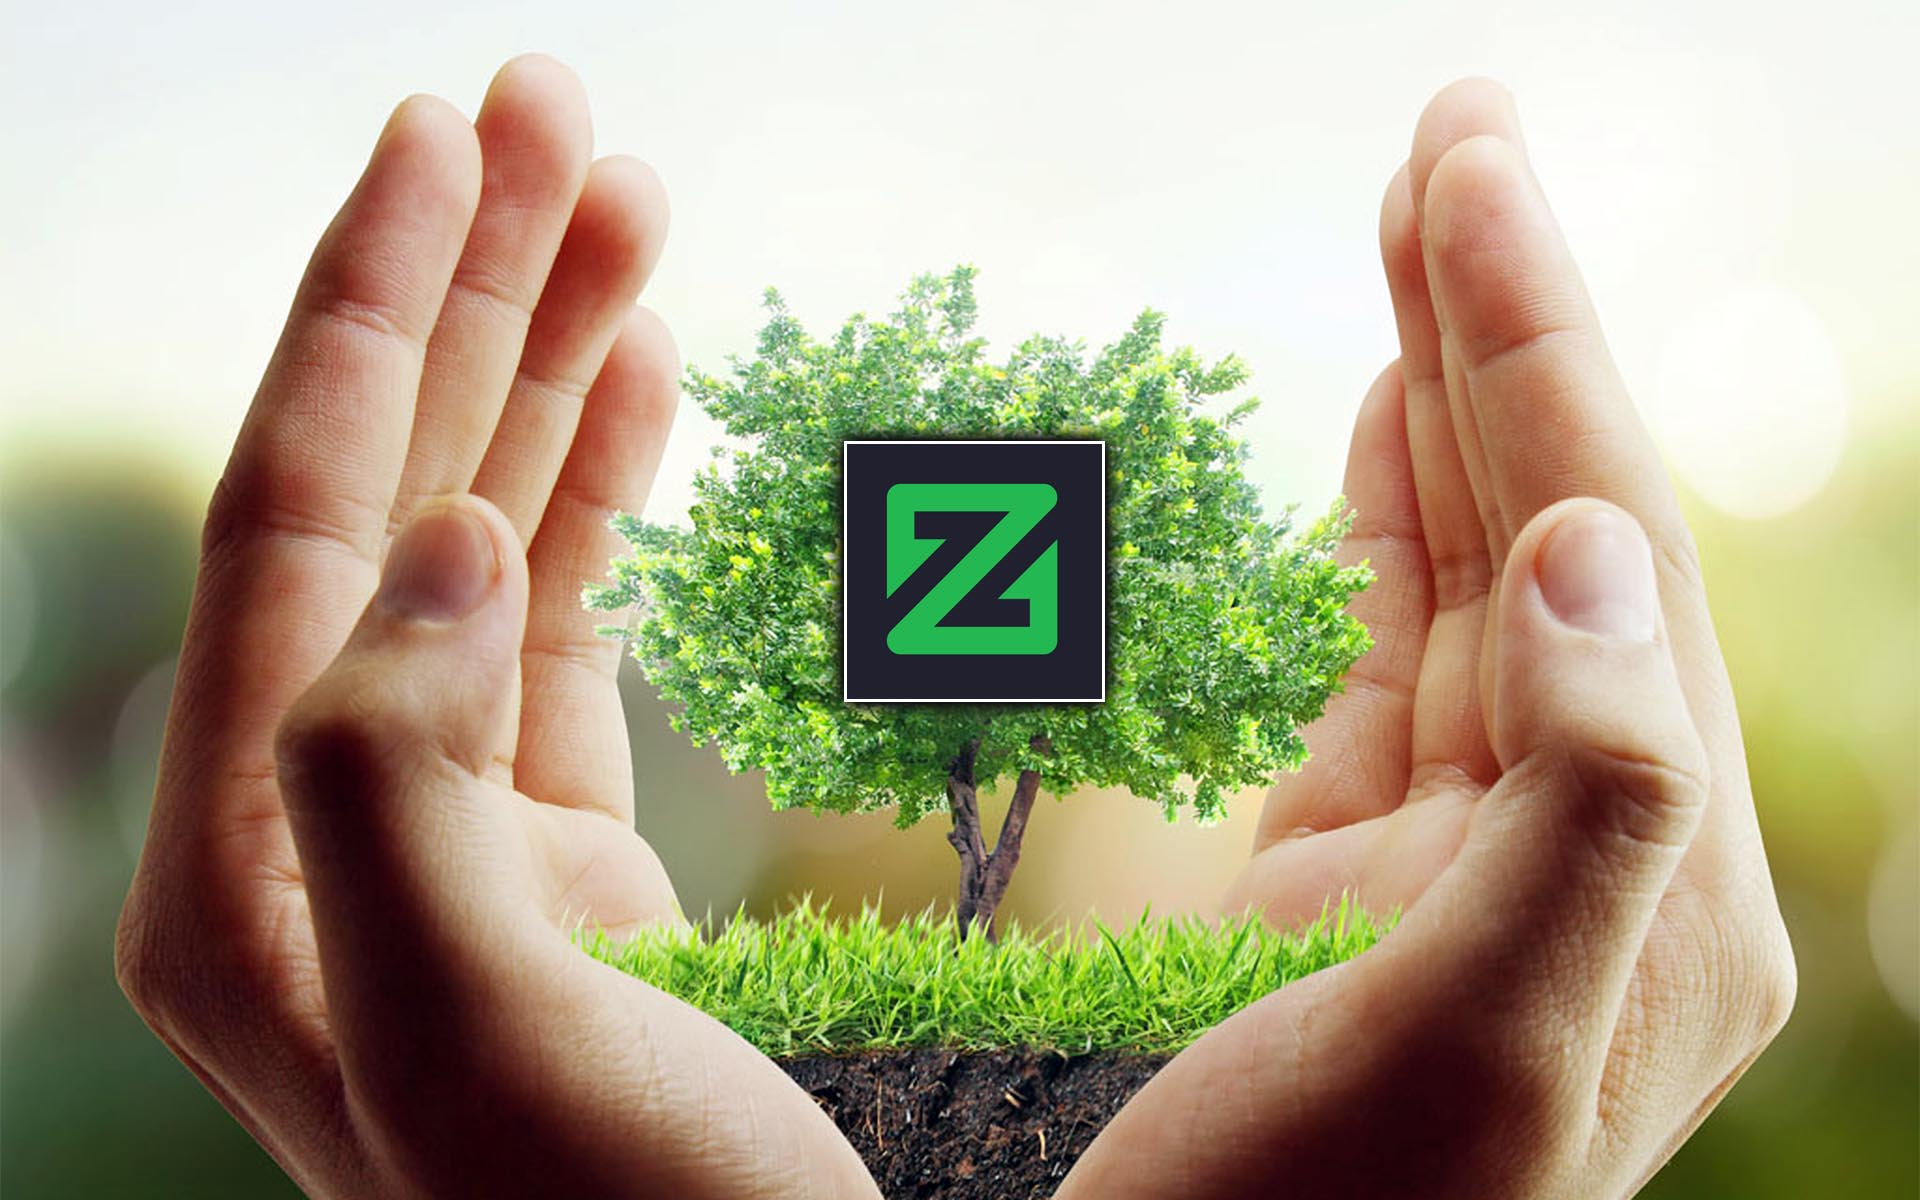 Zcoin Achieves First Ever Implementation of Merkle Tree Proof to Solve Miner Centralization Imbalance